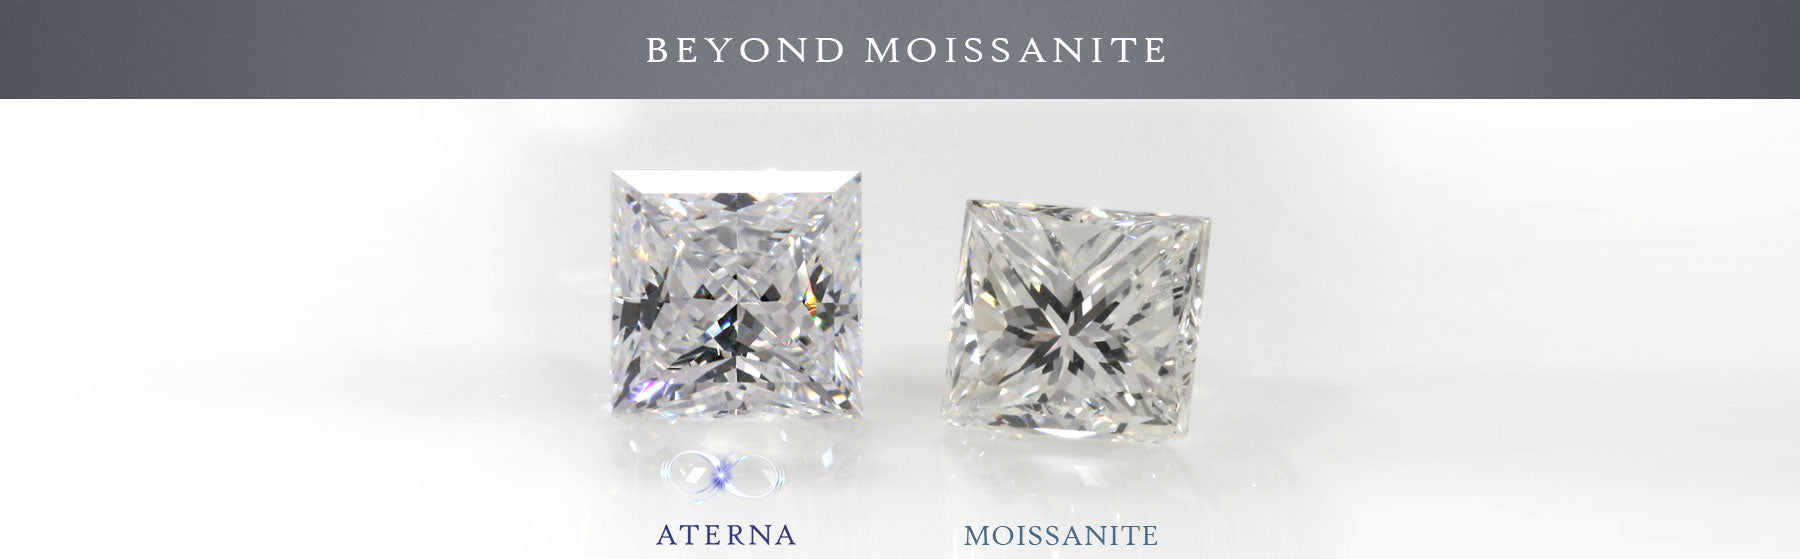 Aterna is beyond moissanite diamond comparison at quorri